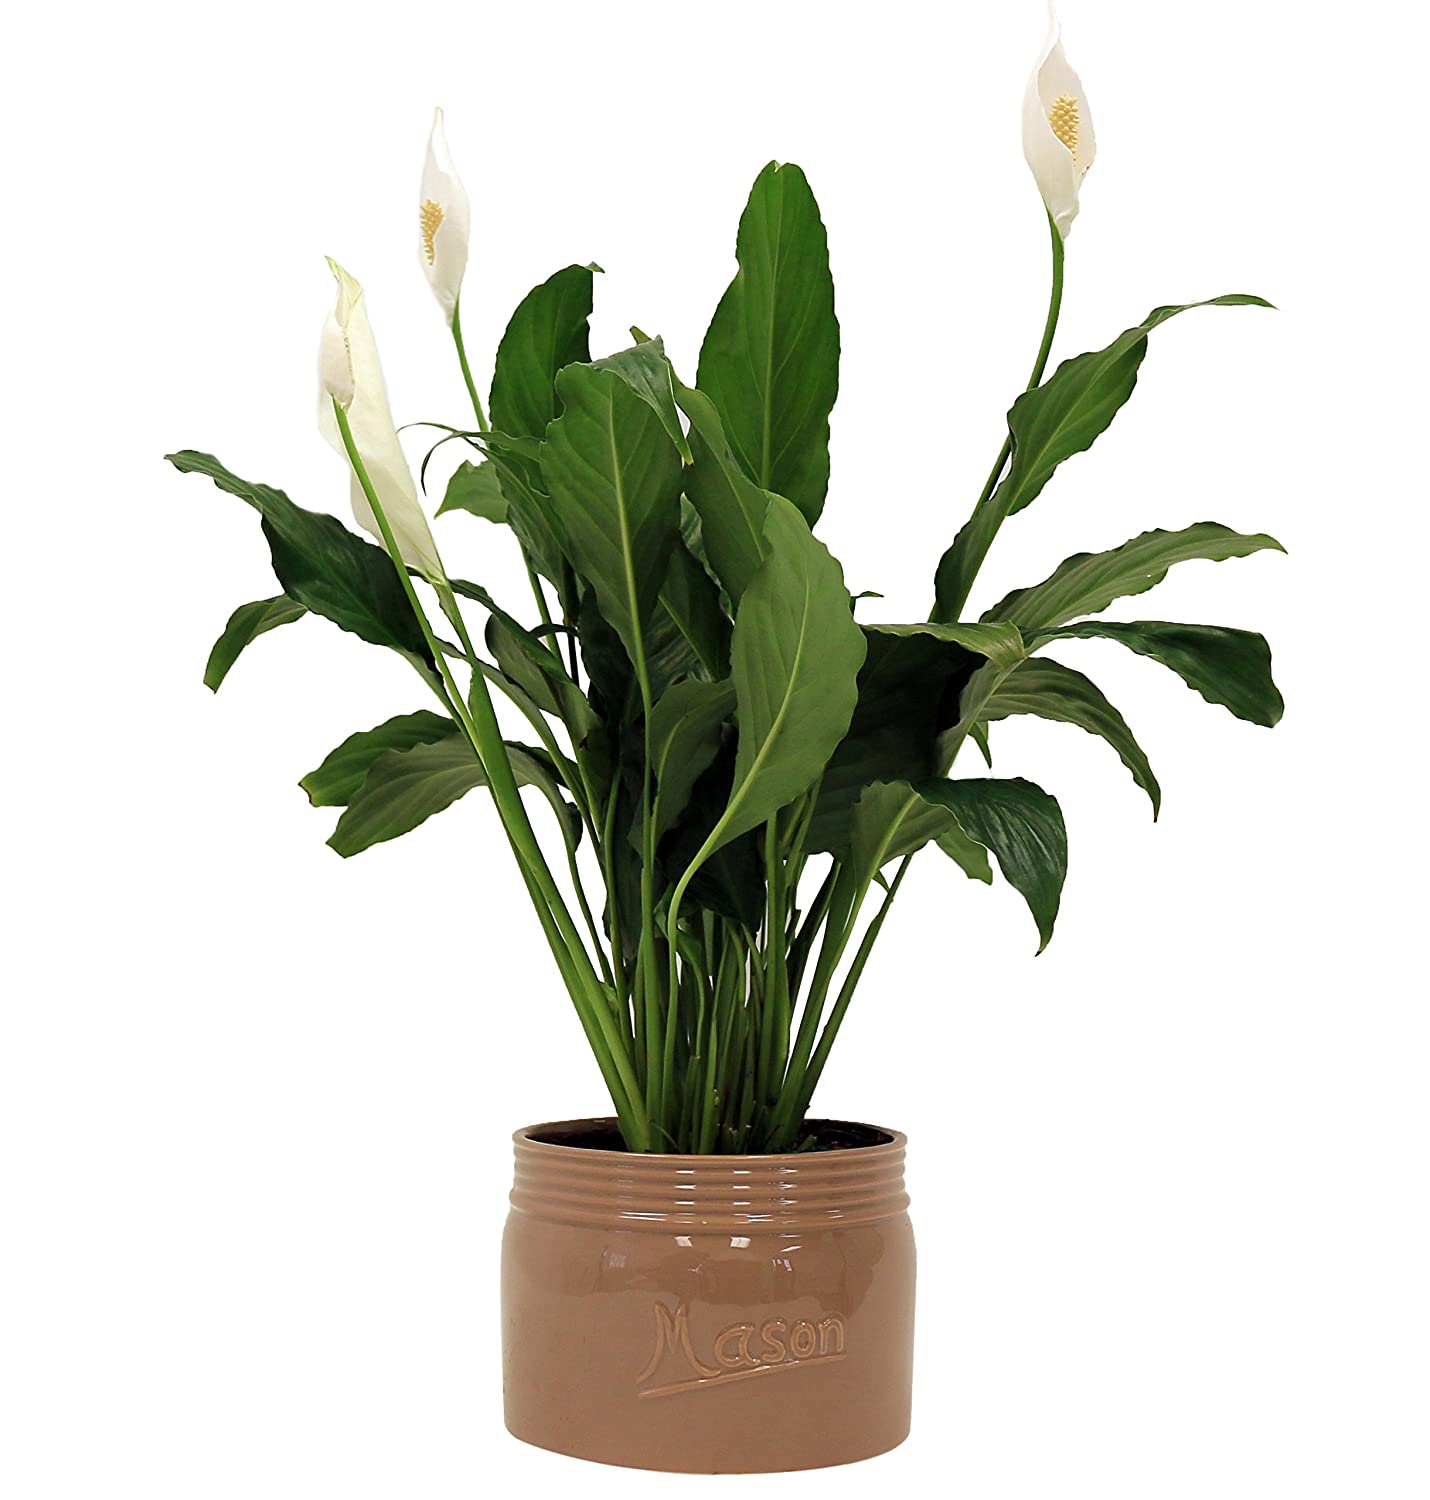 Amazon costa farms premium live indoor peace lily amazon costa farms premium live indoor peace lily spathiphyllum tabletop plant brown ceramic decorator pot shipped fresh from our farm izmirmasajfo